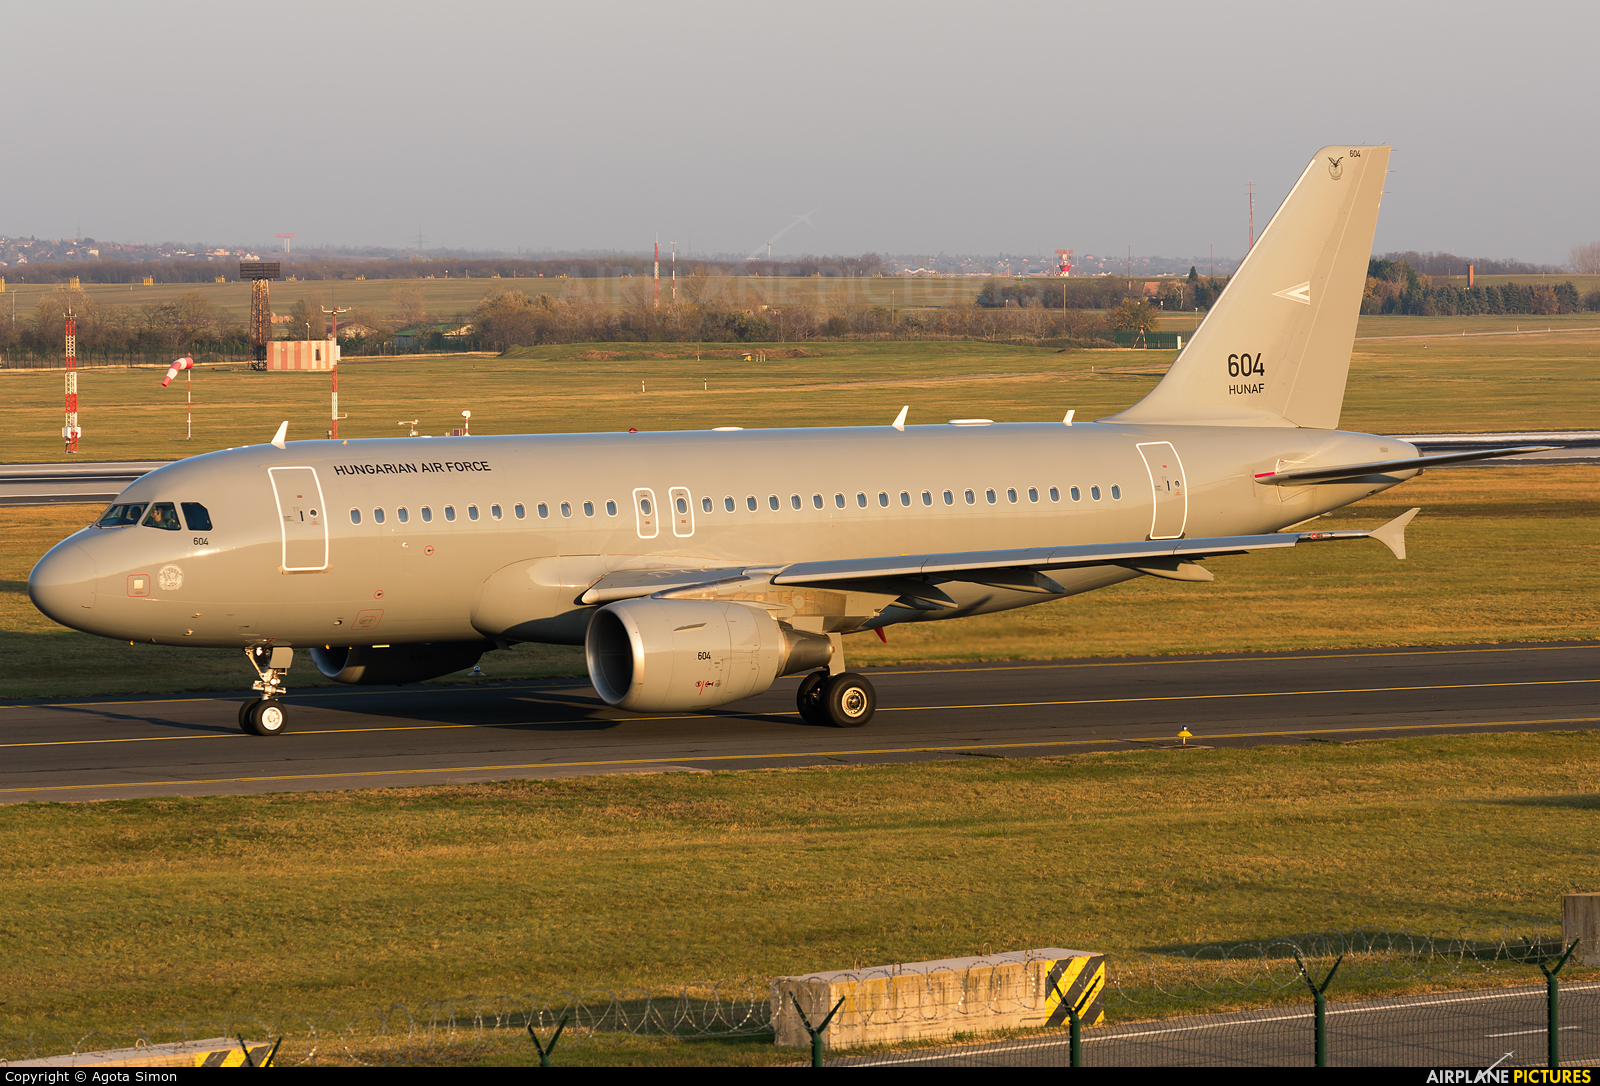 Hungary - Air Force 604 aircraft at Budapest Ferenc Liszt International Airport